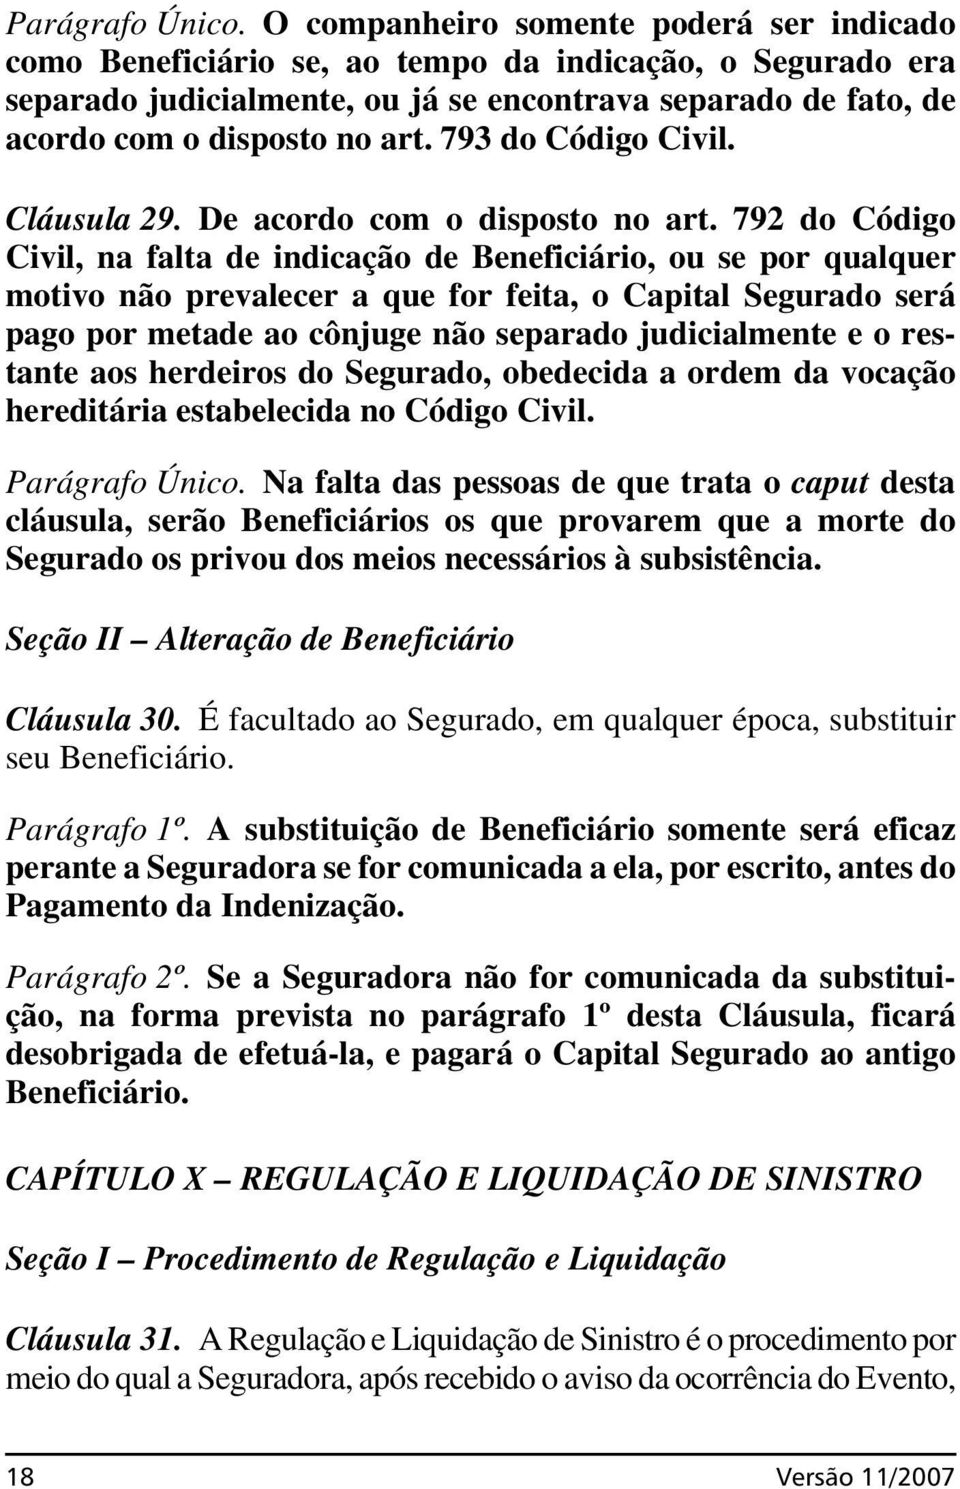 793 do Código Civil. Cláusula 29. De acordo com o disposto no art.